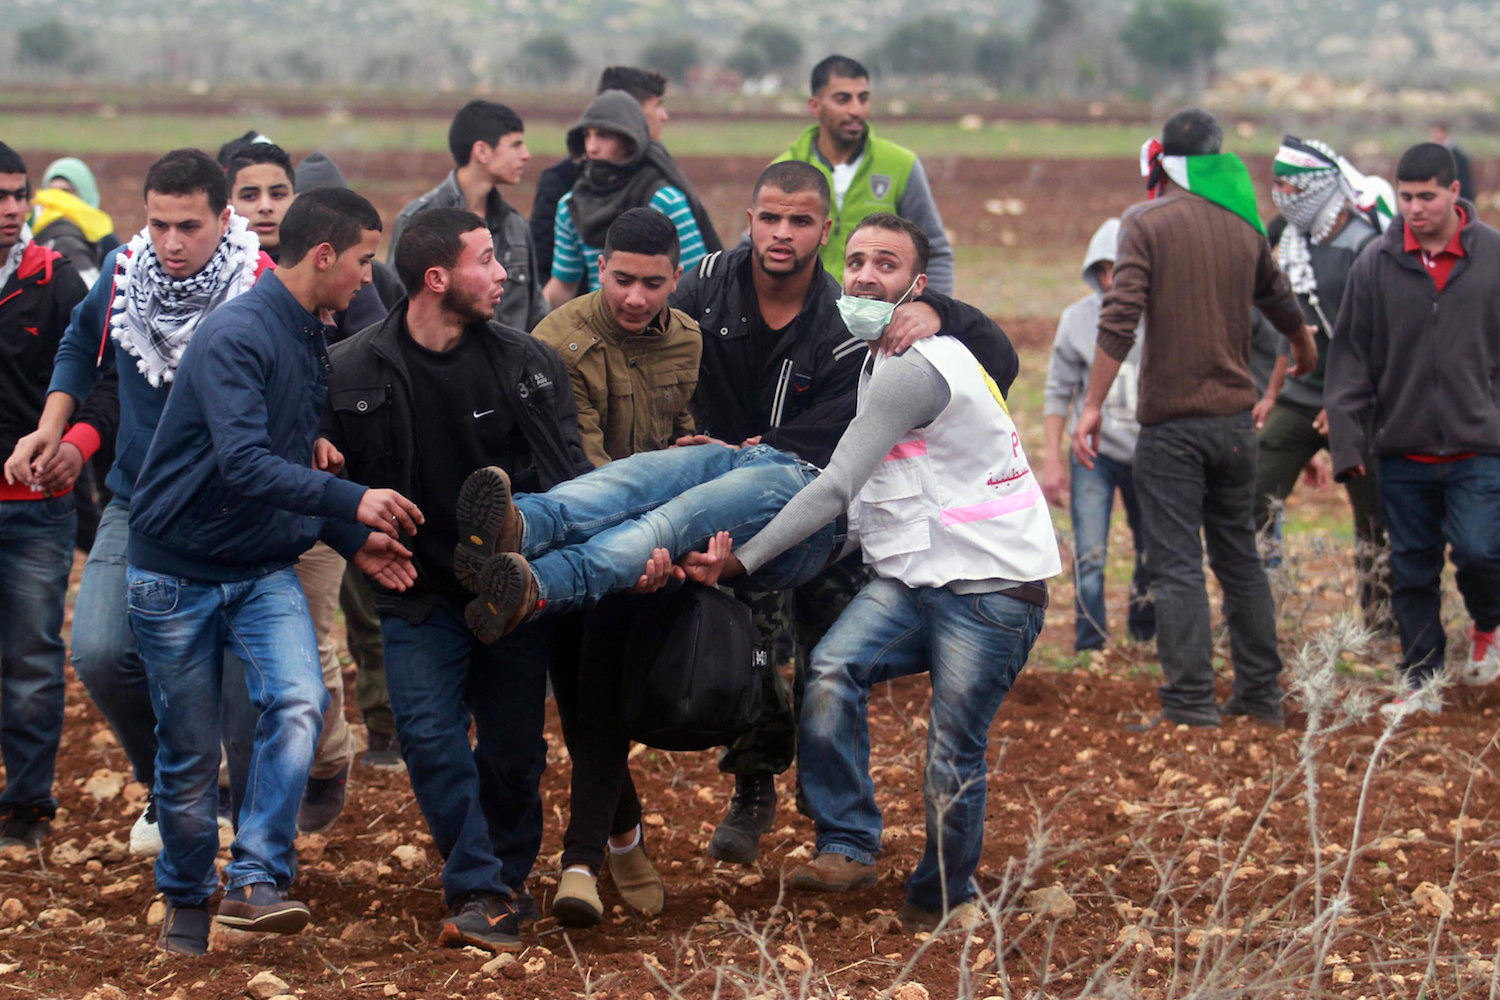 Palestinians carry a man wounded in clashes with Israeli forces following a demonstration against Israeli settlements in the West Bank village of Turmus Ayya, north of Ramallah, December 19, 2014. (Flash90)